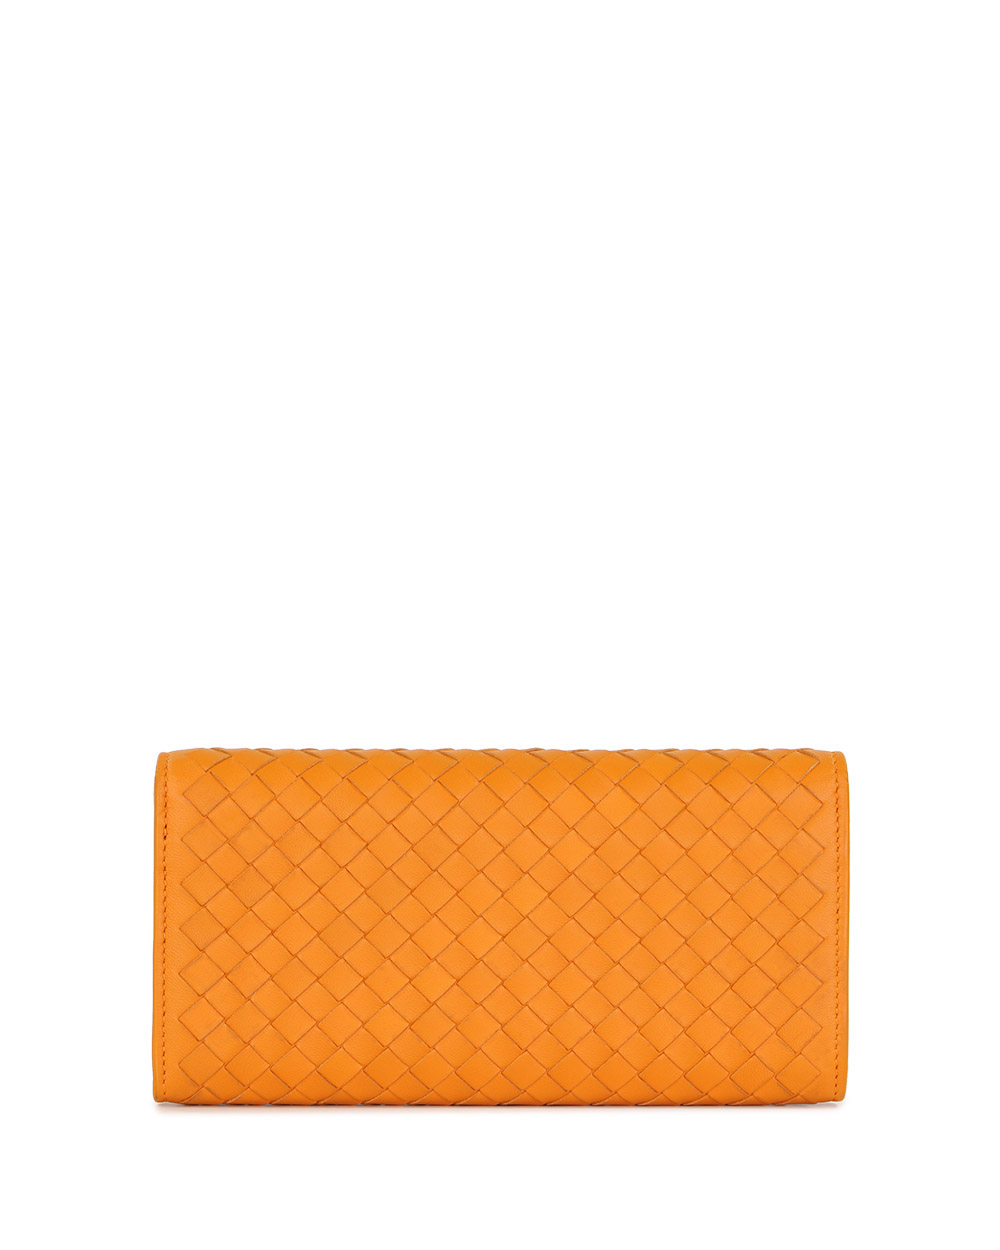 Woven Lamb Leather Long Wallet 2